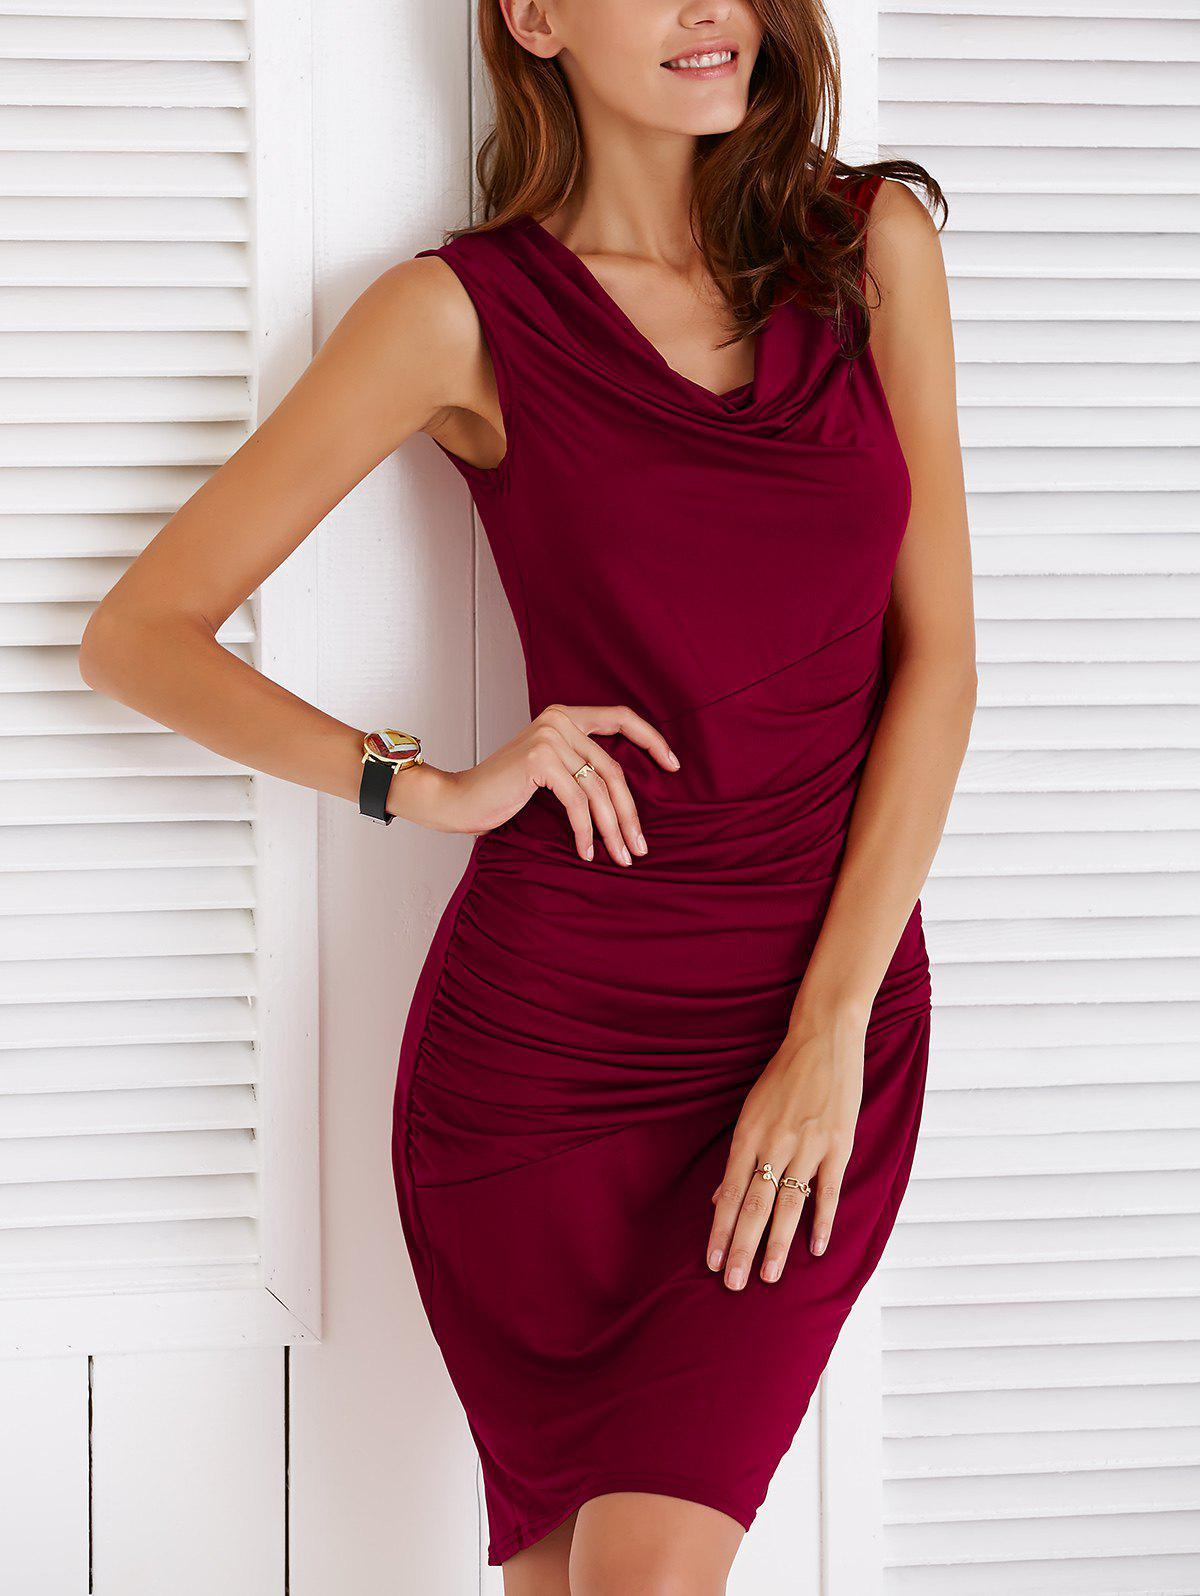 Chic Sleeveless Cowl Neck Slimming Ruched Pure Color Women's Dress - WINE RED S